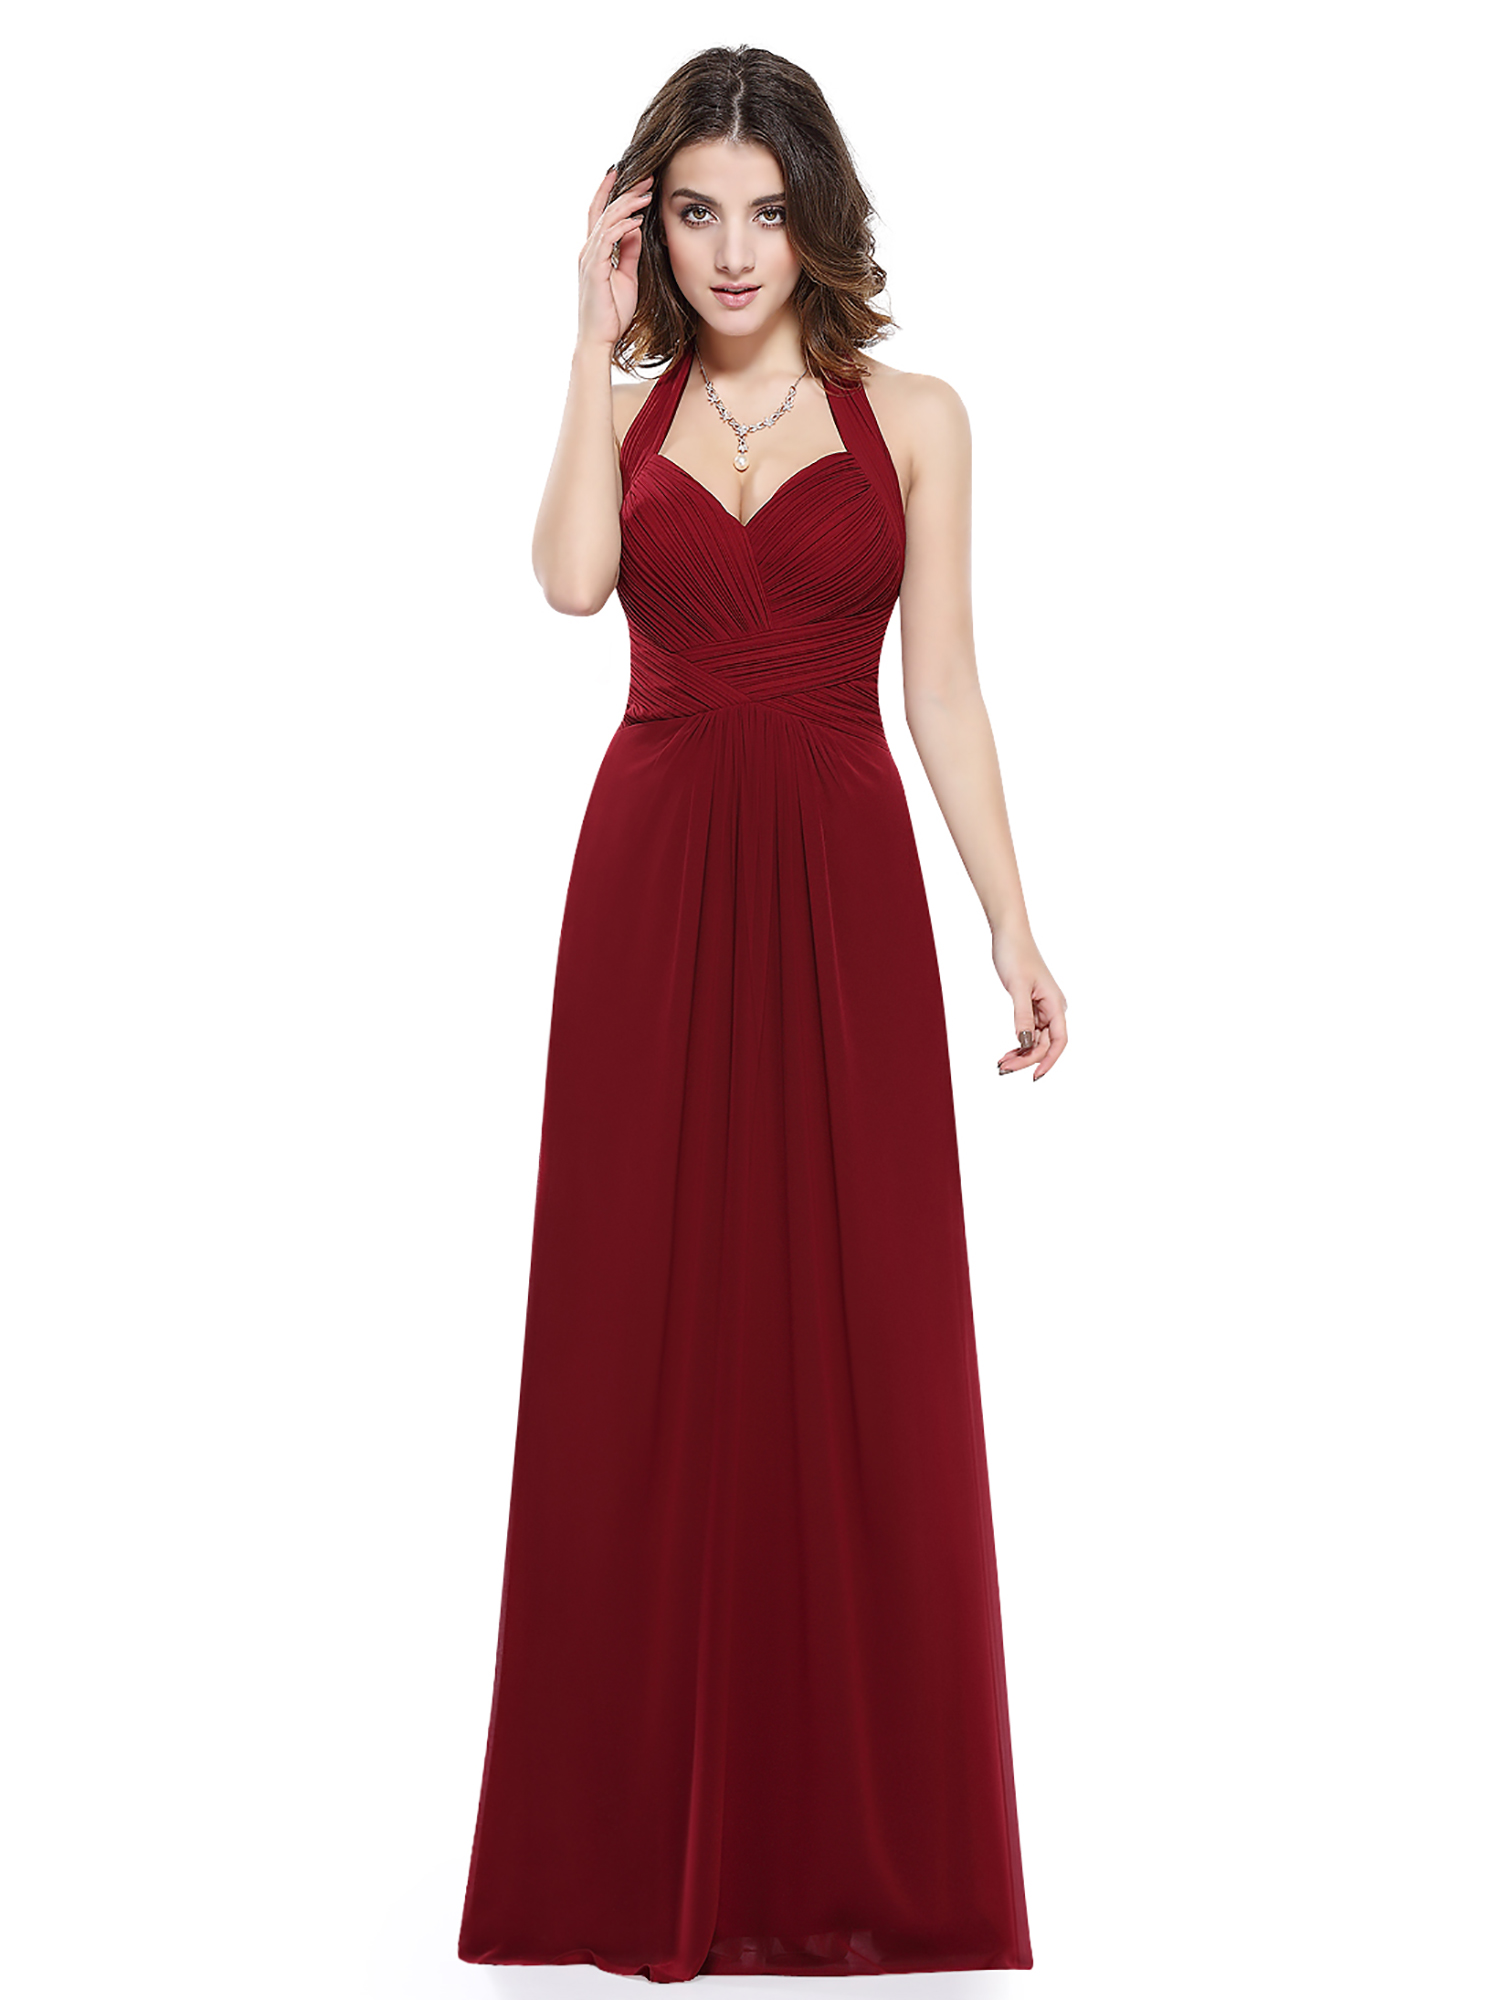 Women 39 s maxi halter bridesmaid dress evening wedding prom for Wedding and evening dresses